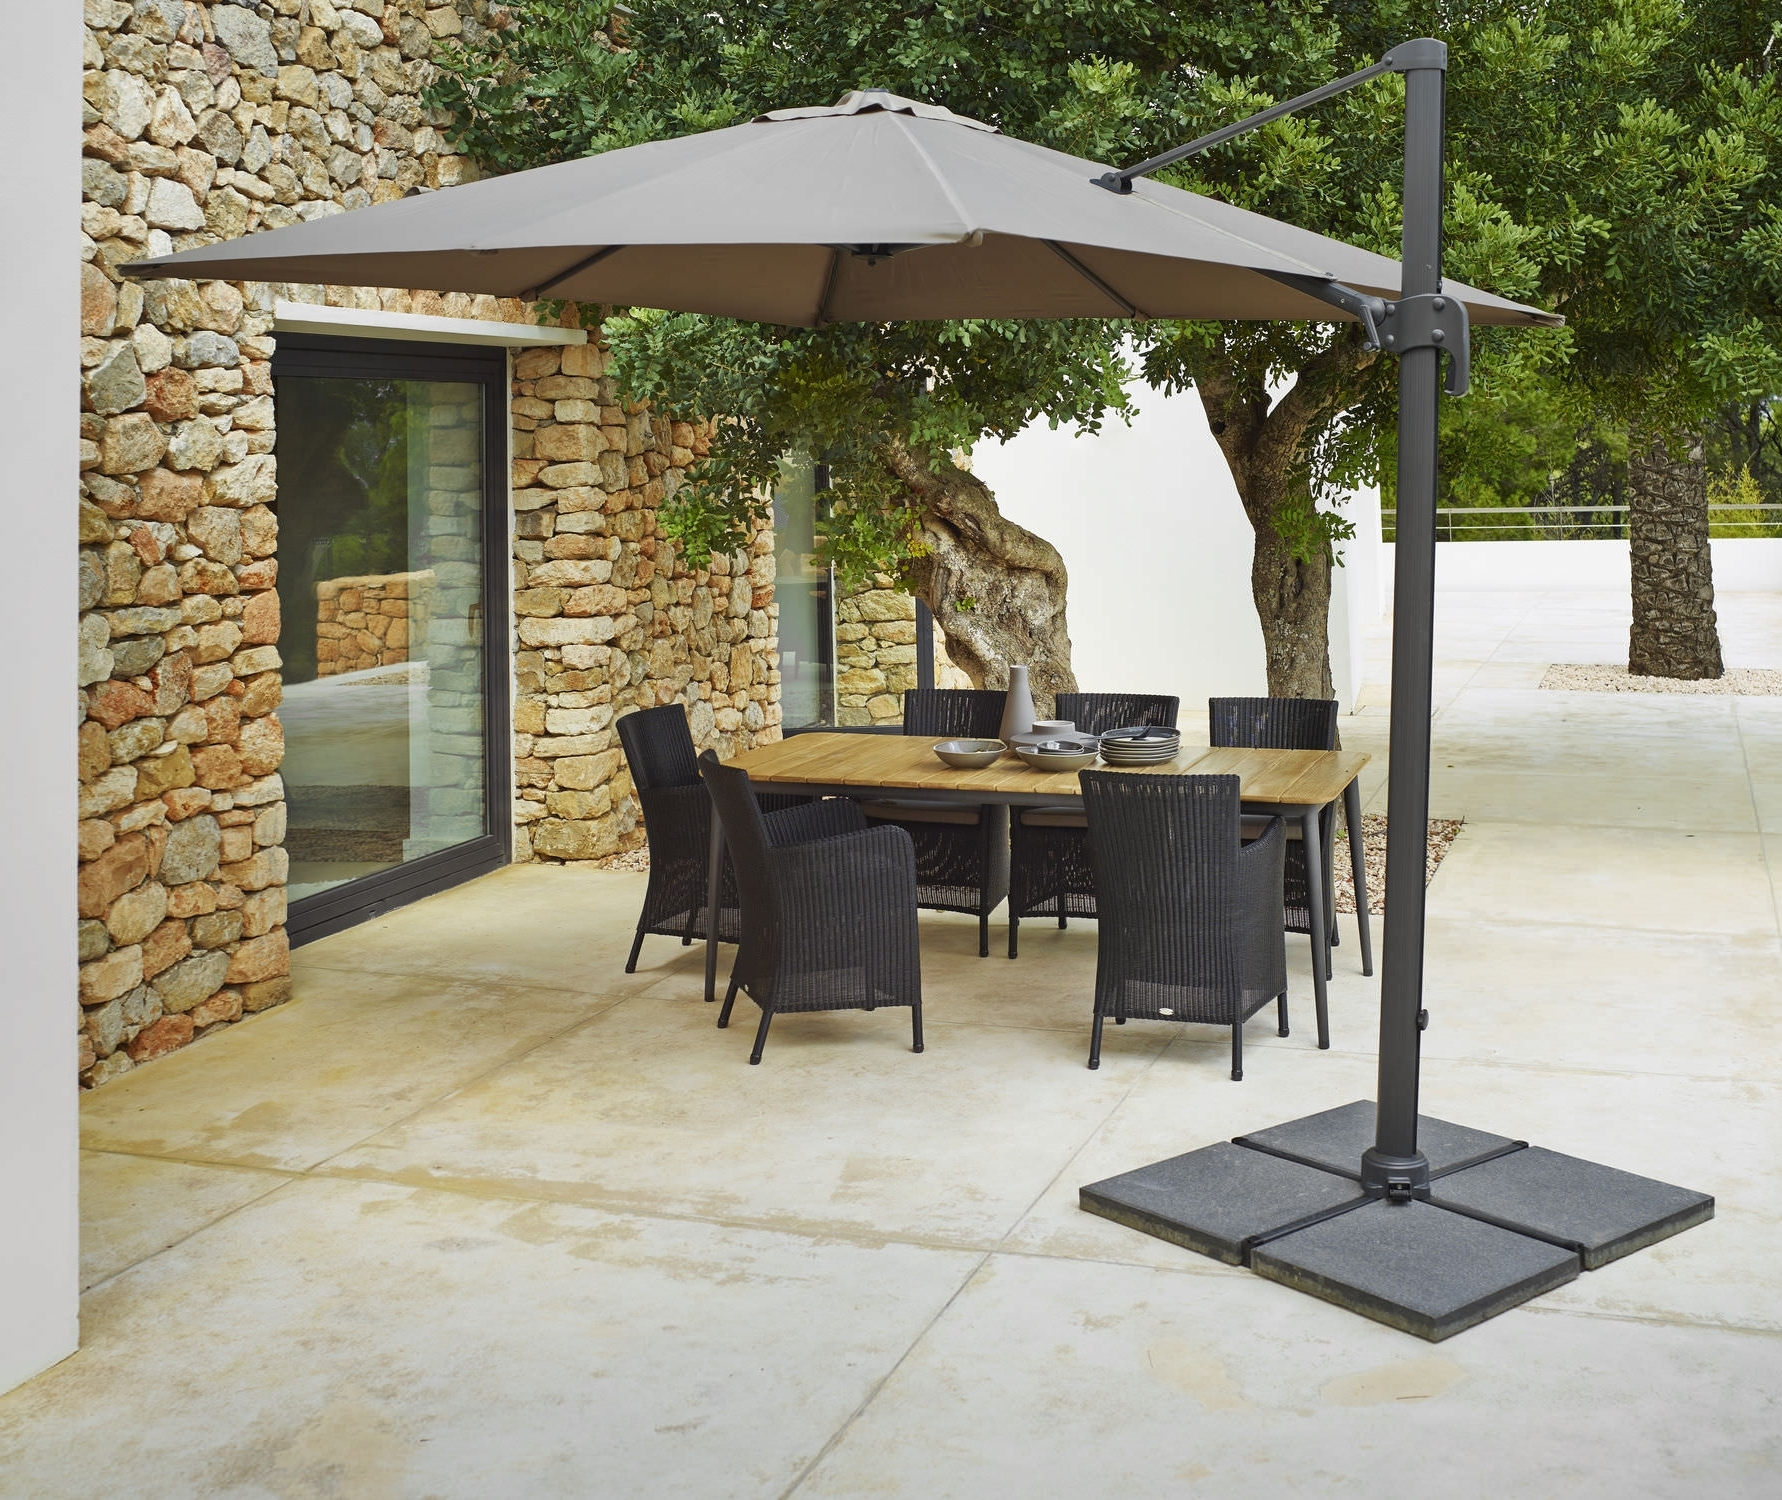 38 Offset Patio Umbrella Clearance, Offset Patio Umbrella Clearance Intended For 2019 Hanging Offset Patio Umbrellas (View 19 of 20)